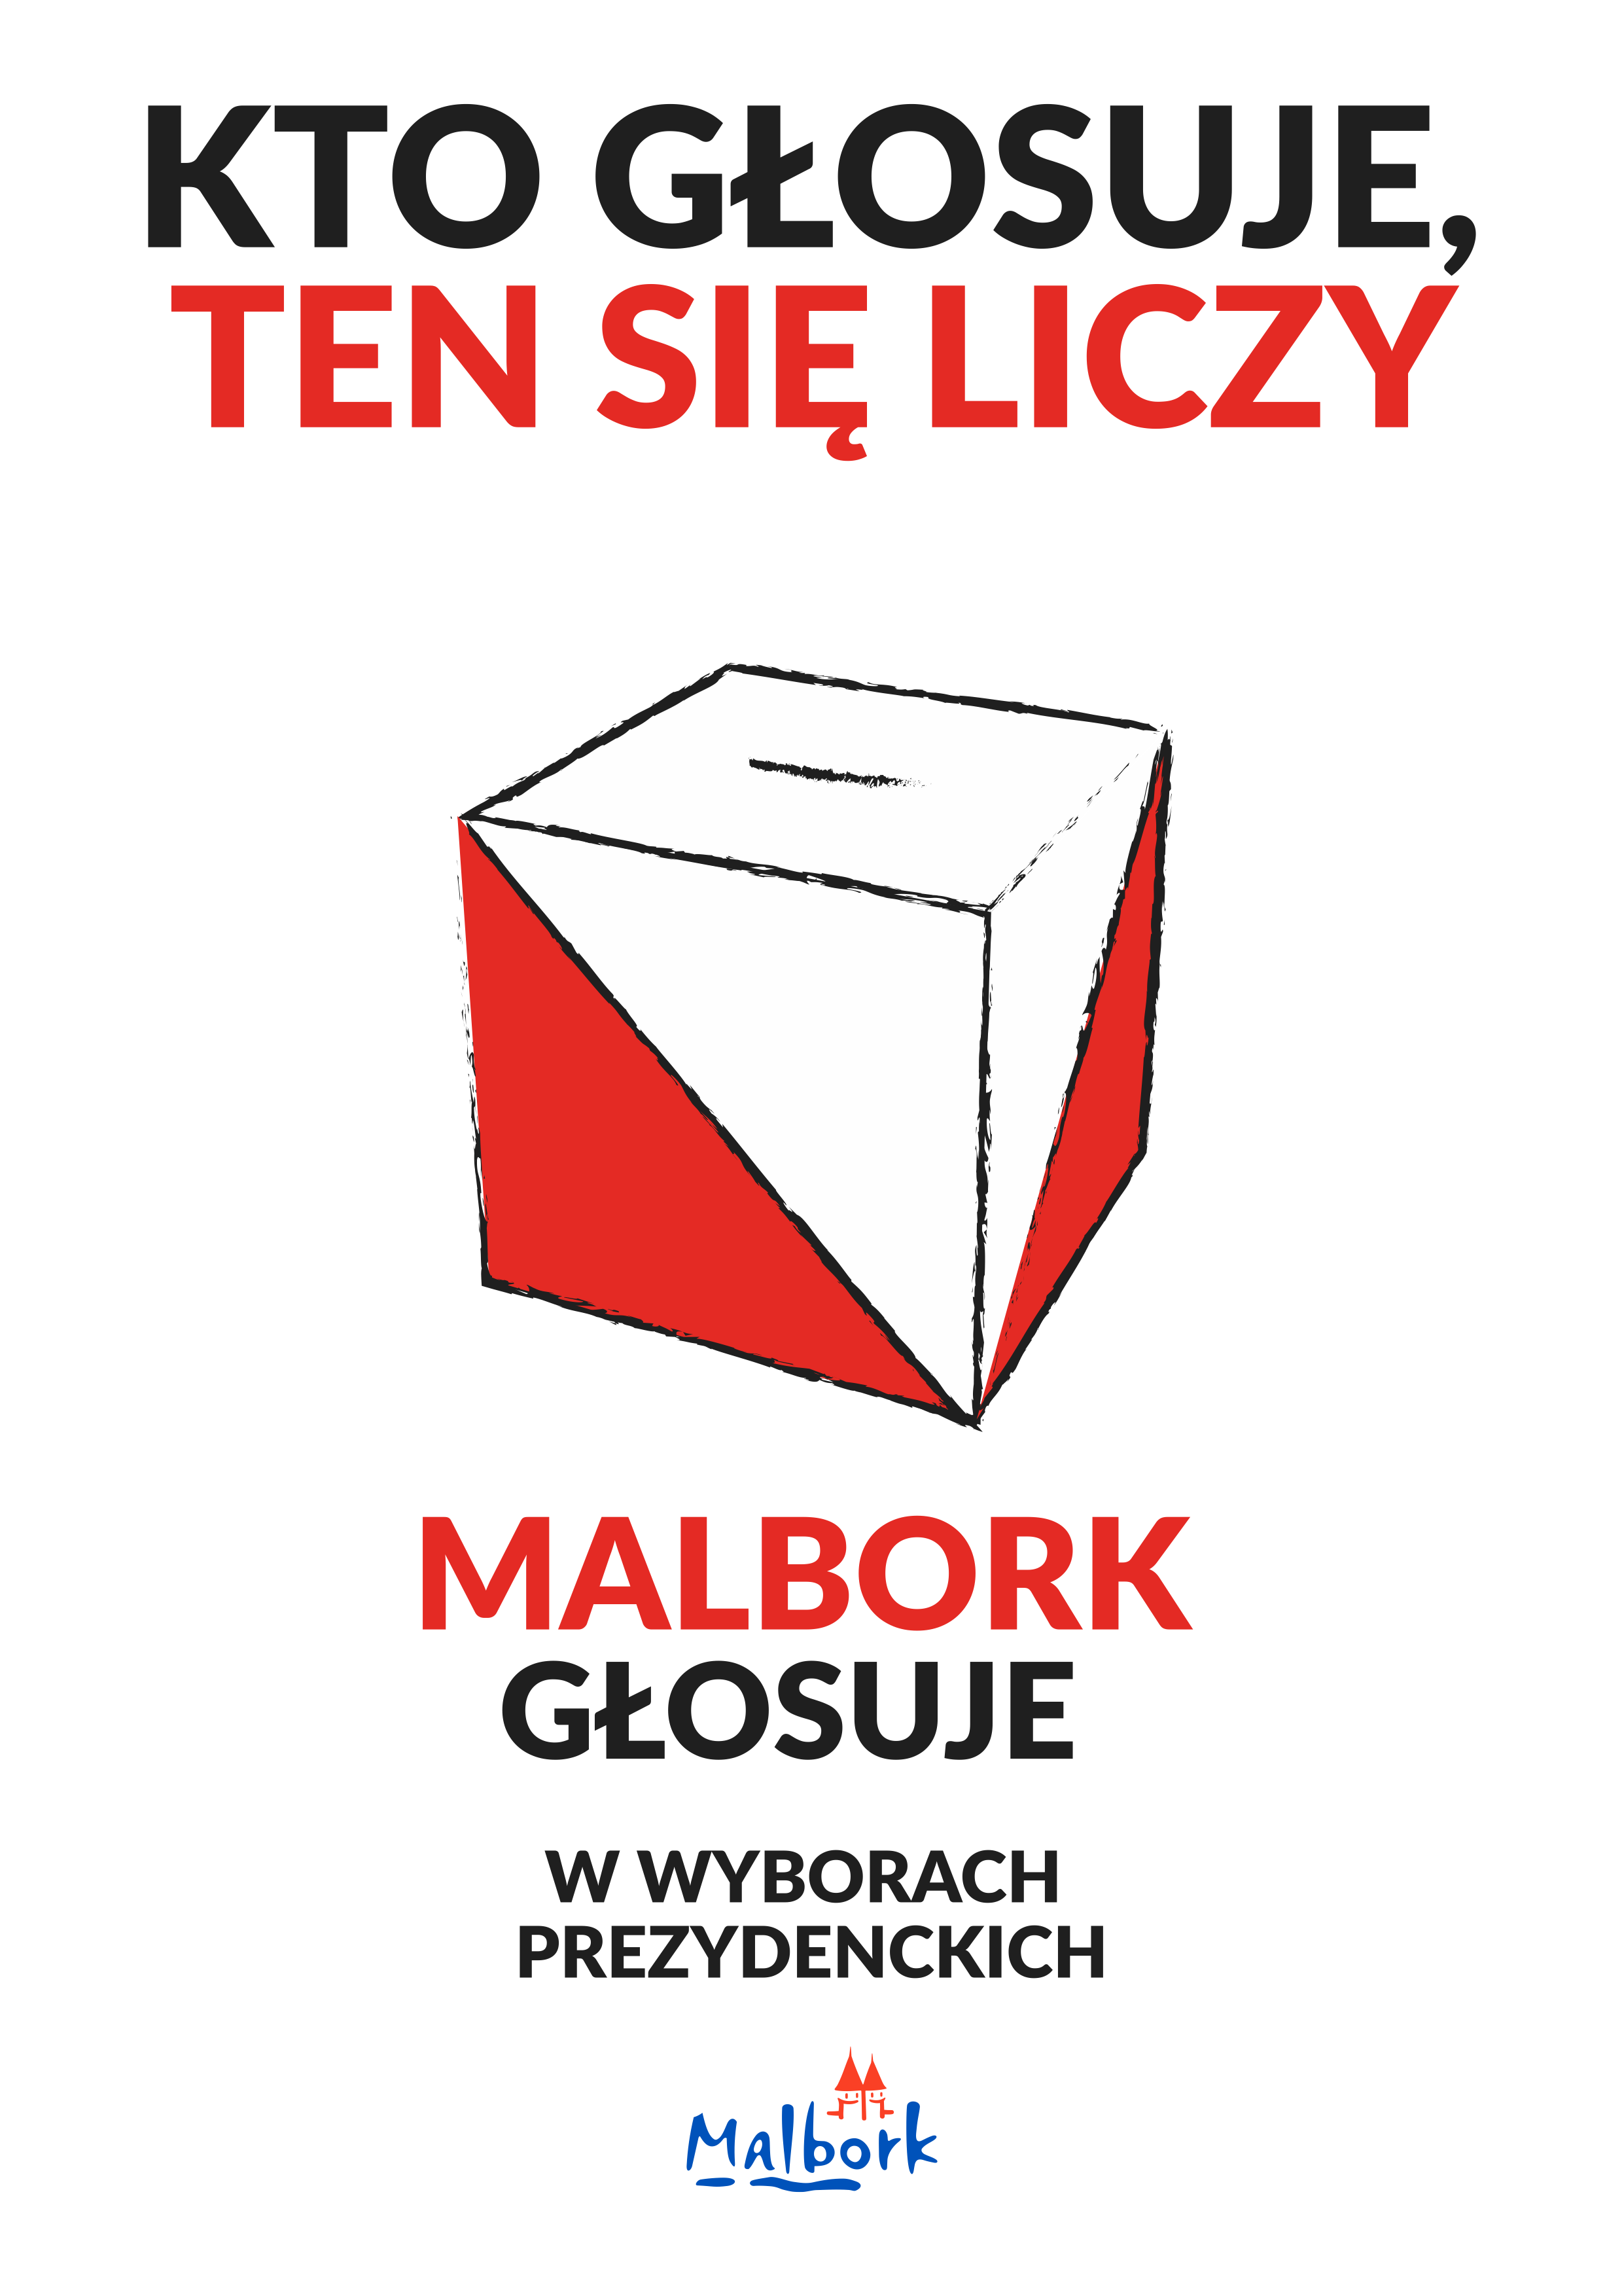 http://m.82-200.pl/2020/06/orig/wybory-6190.png